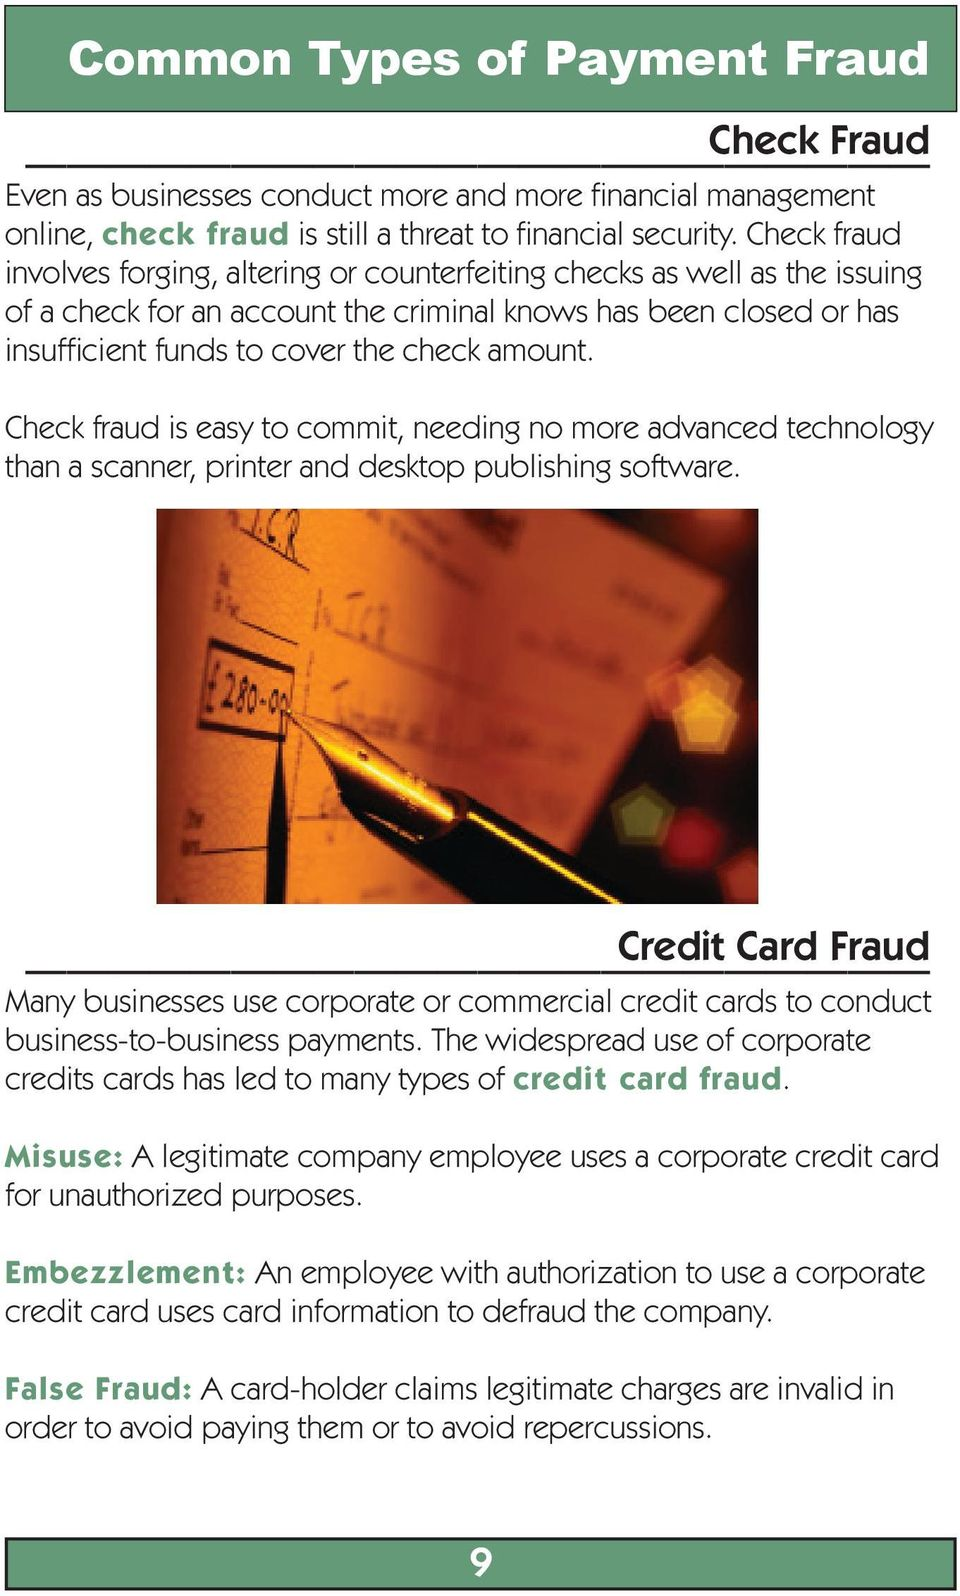 Check fraud is easy to commit, needing no more advanced technology than a scanner, printer and desktop publishing software.